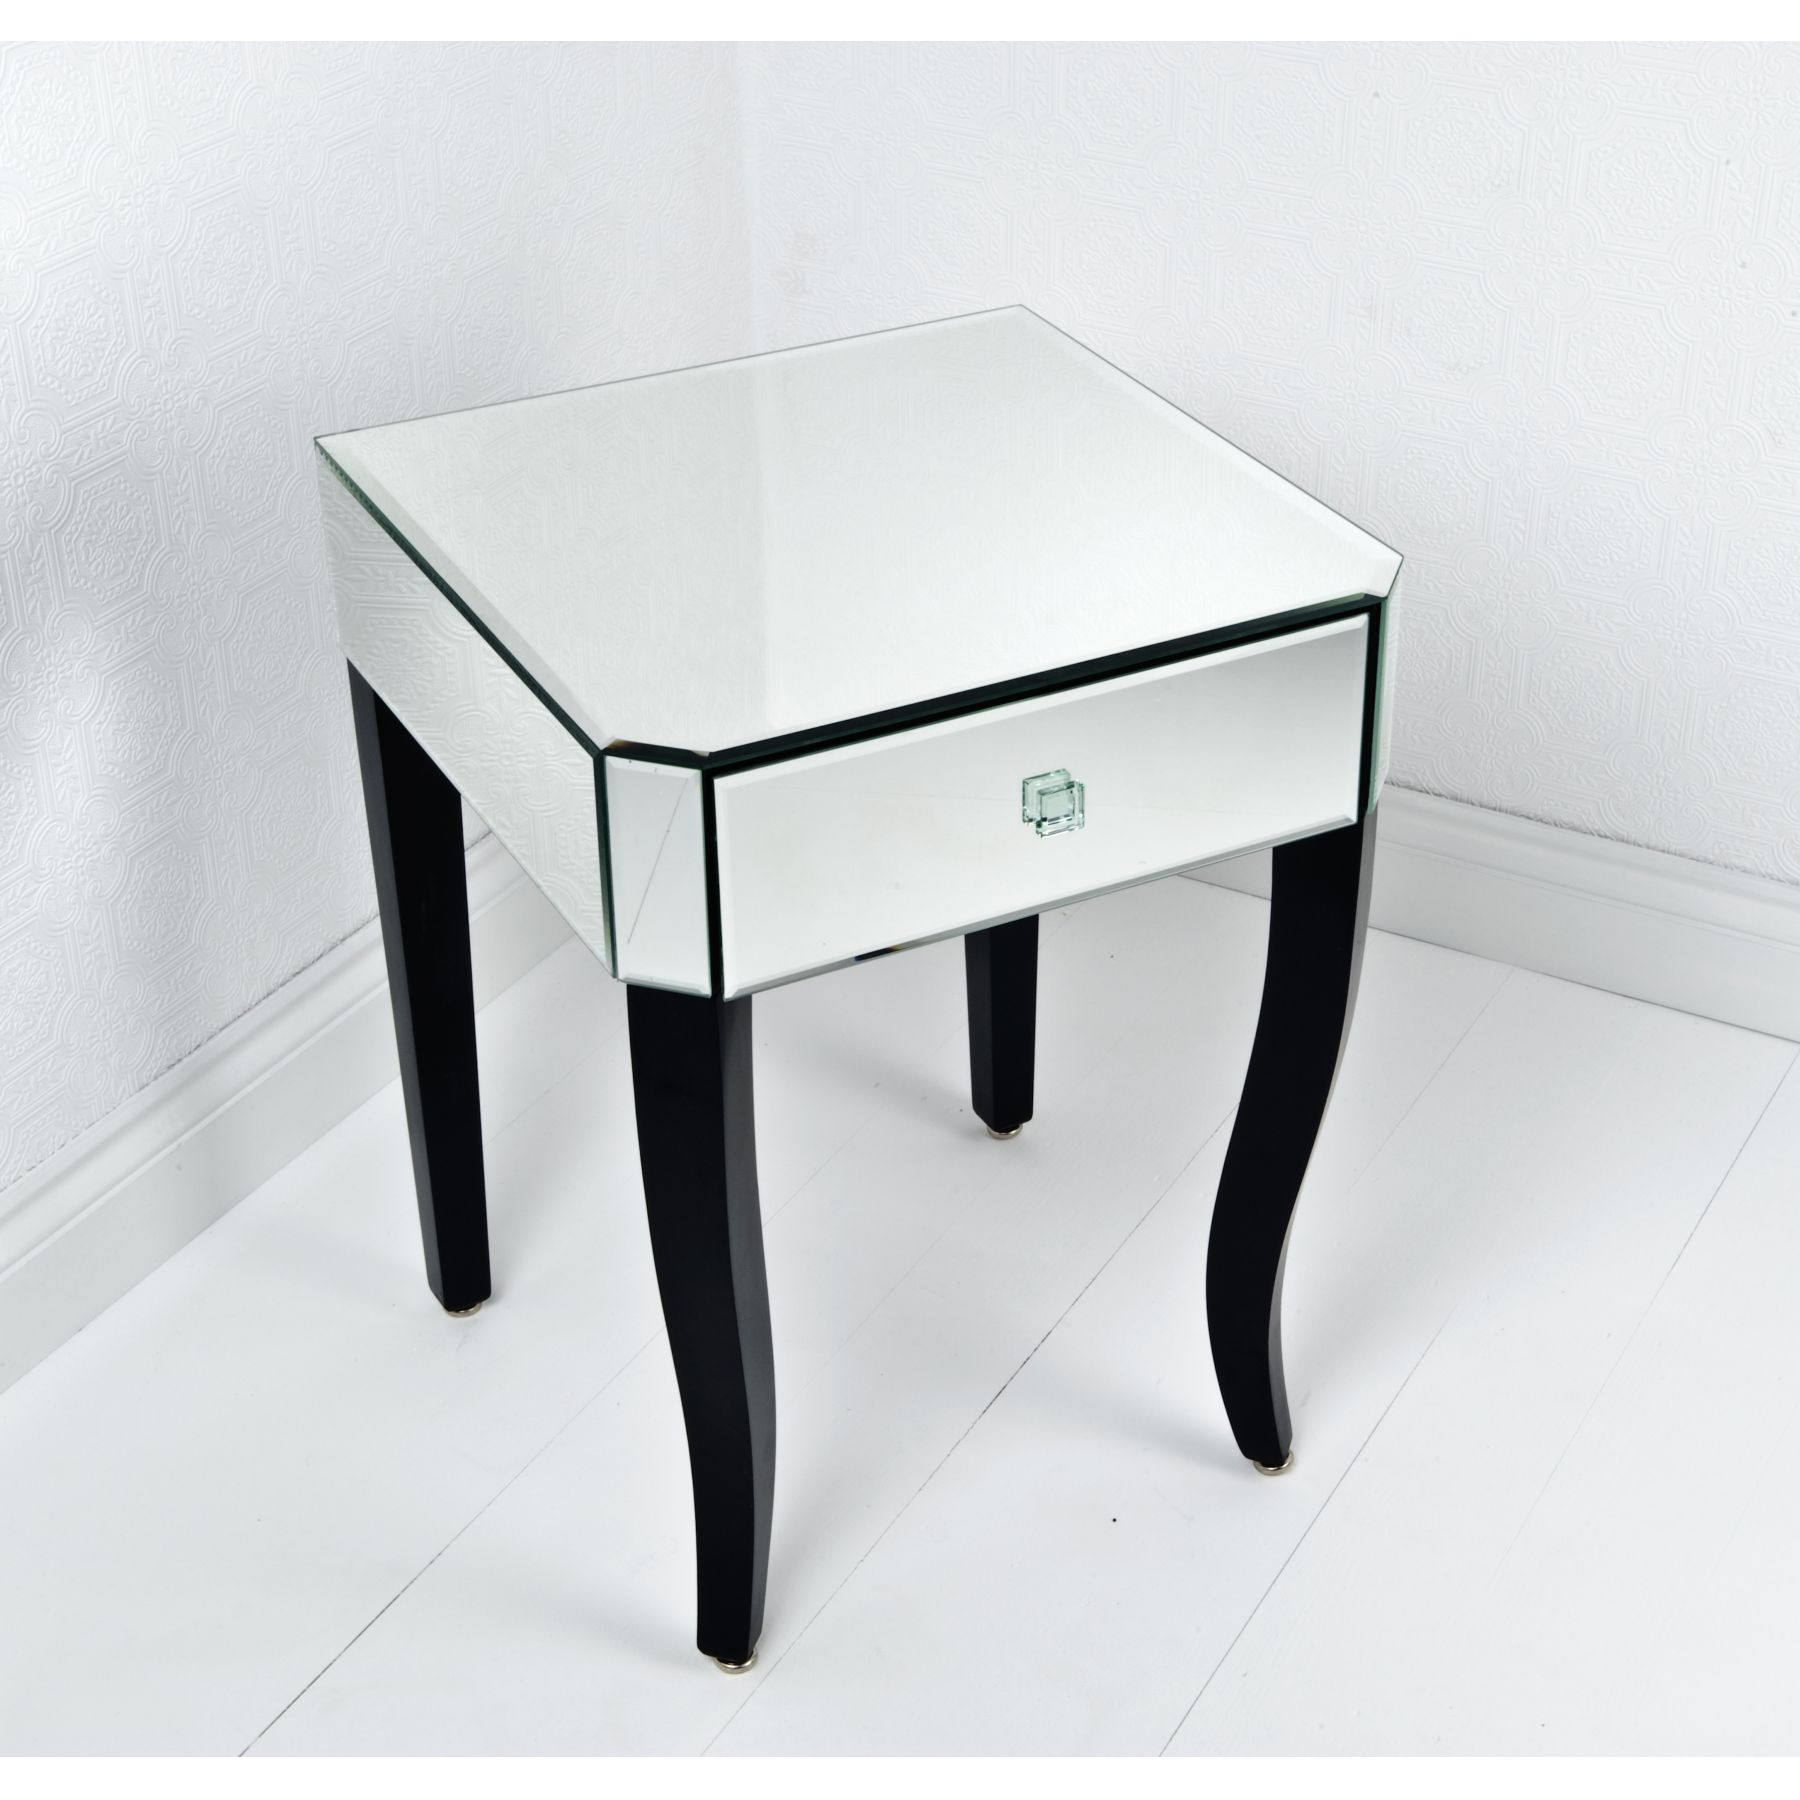 hotxpress mirror design ideas faceted side table sorrento home direct furnitures light wonderfully upholstered refreshing finishing touch modern west elm mirrored nightstand